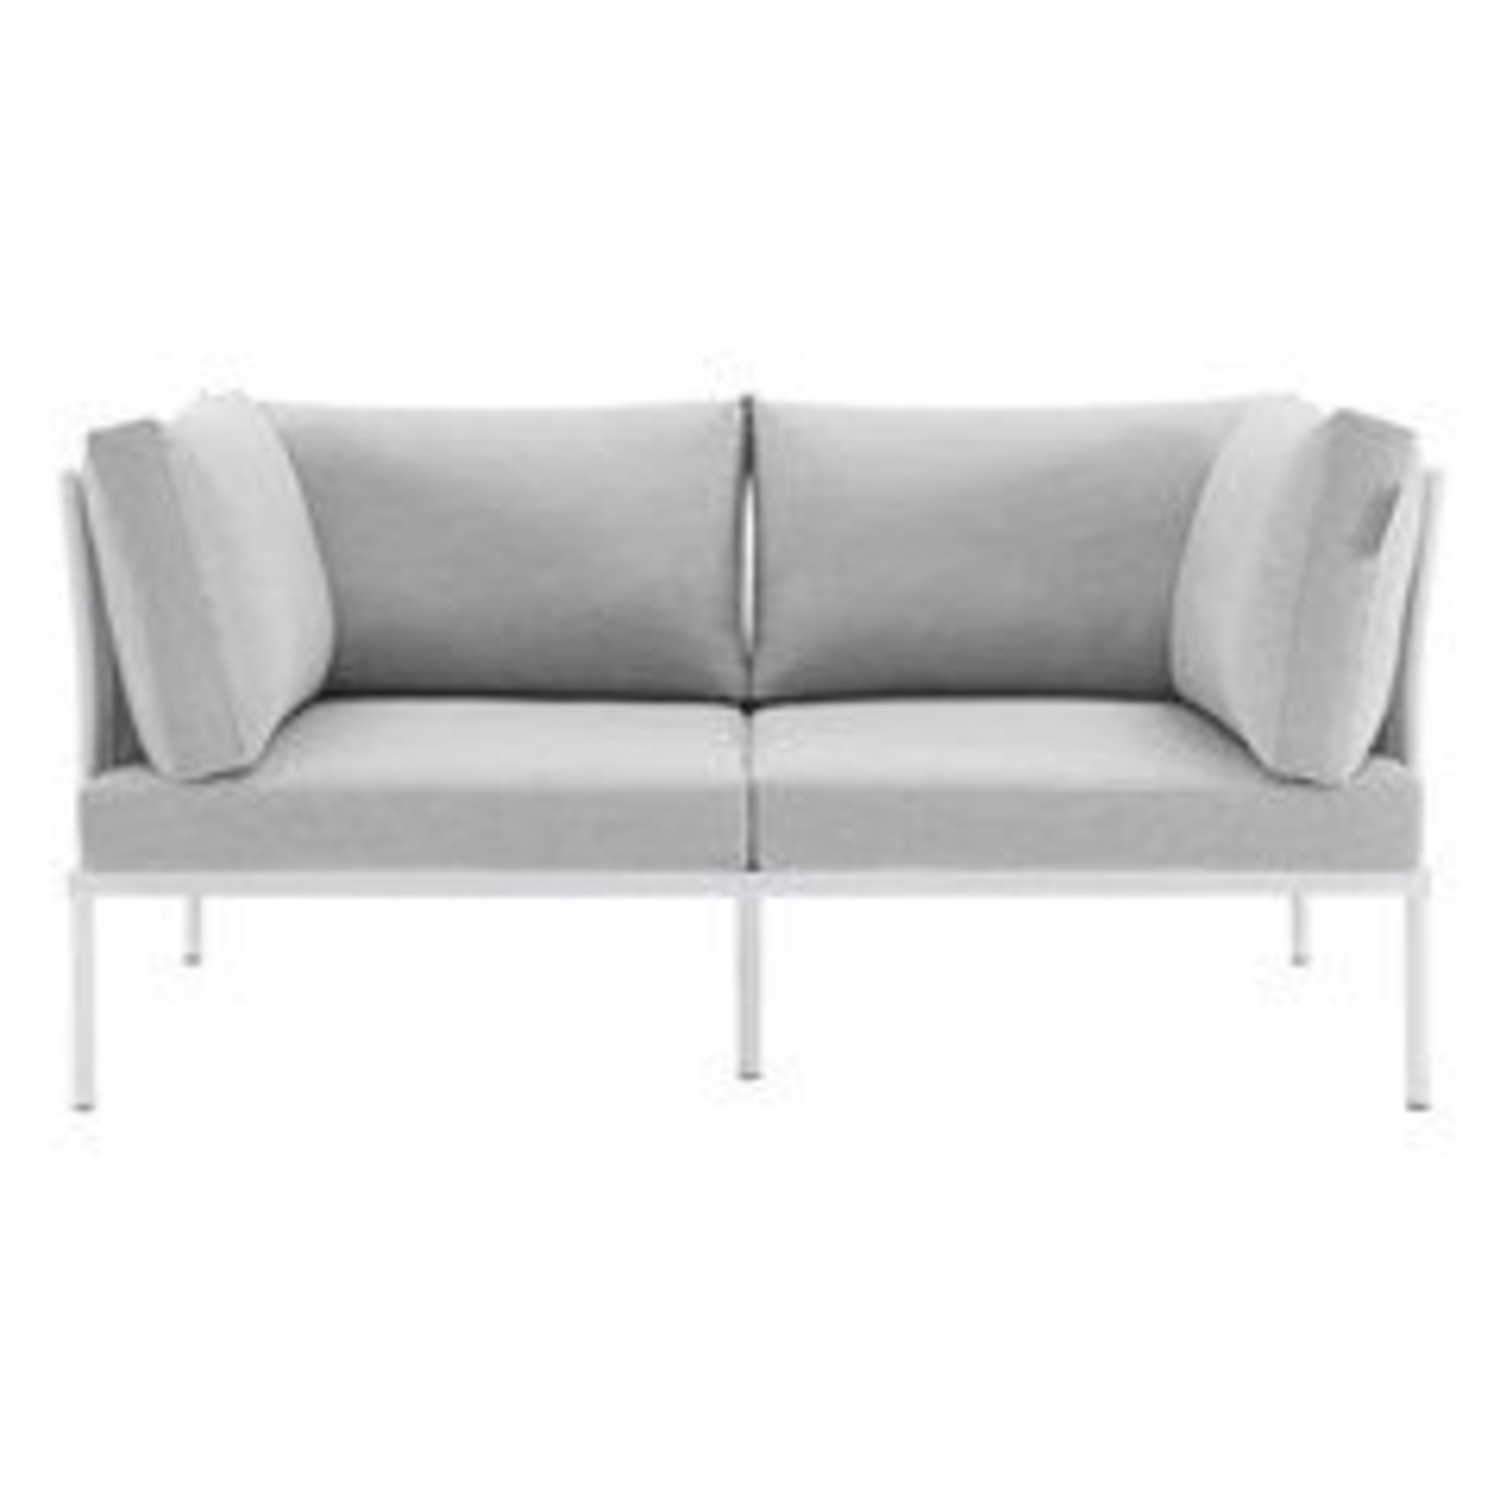 Outdoor Loveseat In White Frame & Gray Cushion - image-1